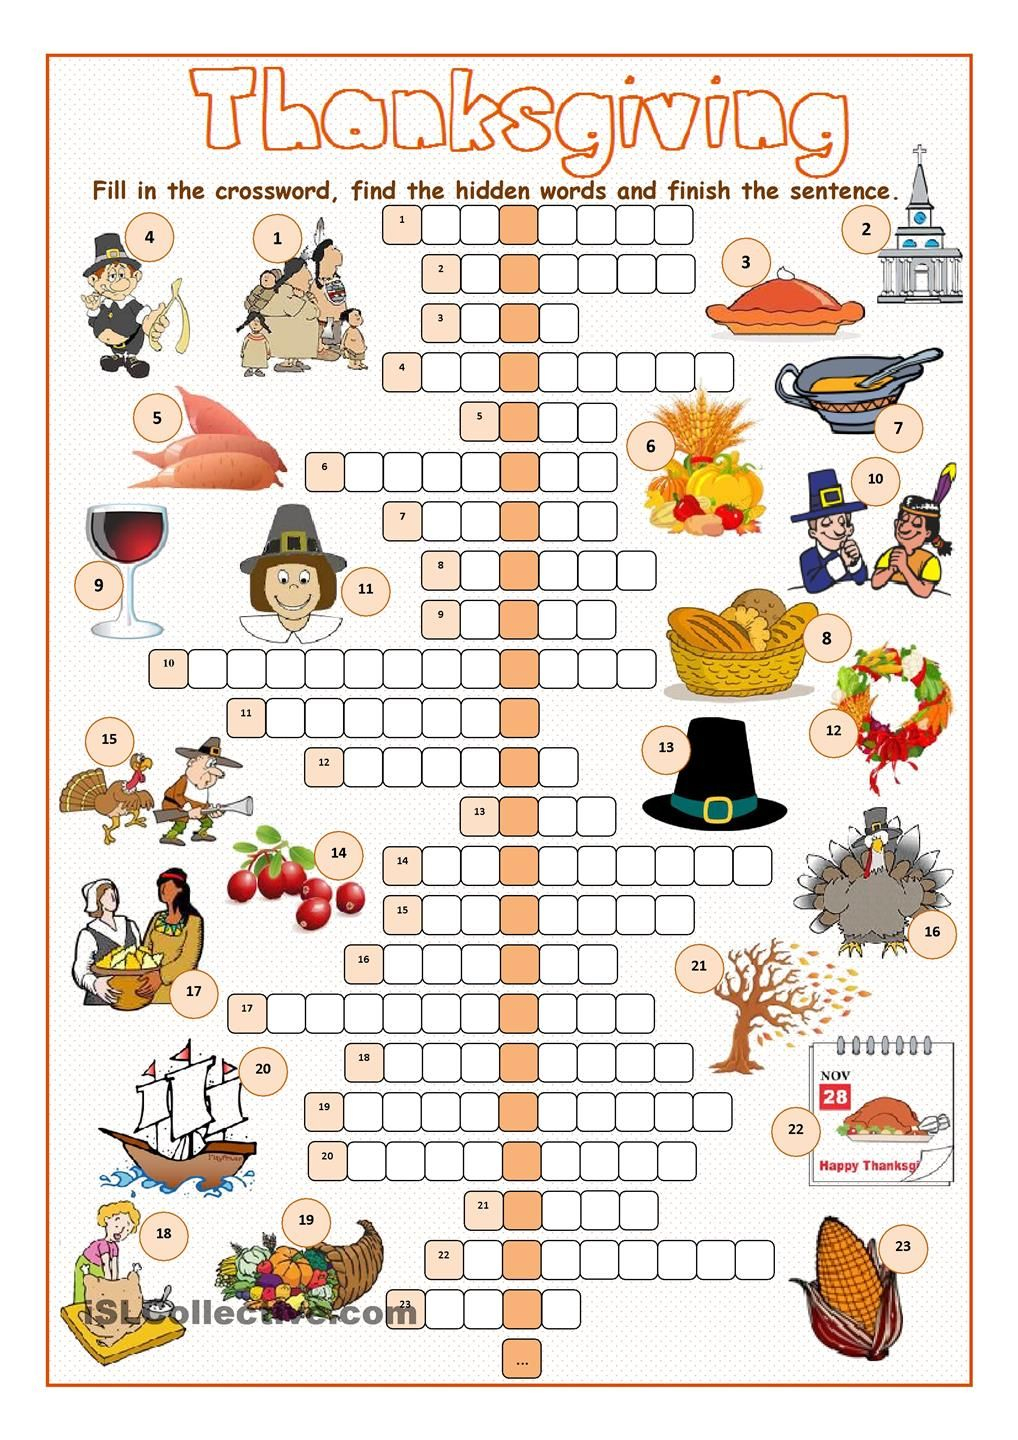 Thanksgiving Crossword Puzzle … | Salle De Classe | Pinte… - Thanksgiving Crossword Puzzles Printable Free